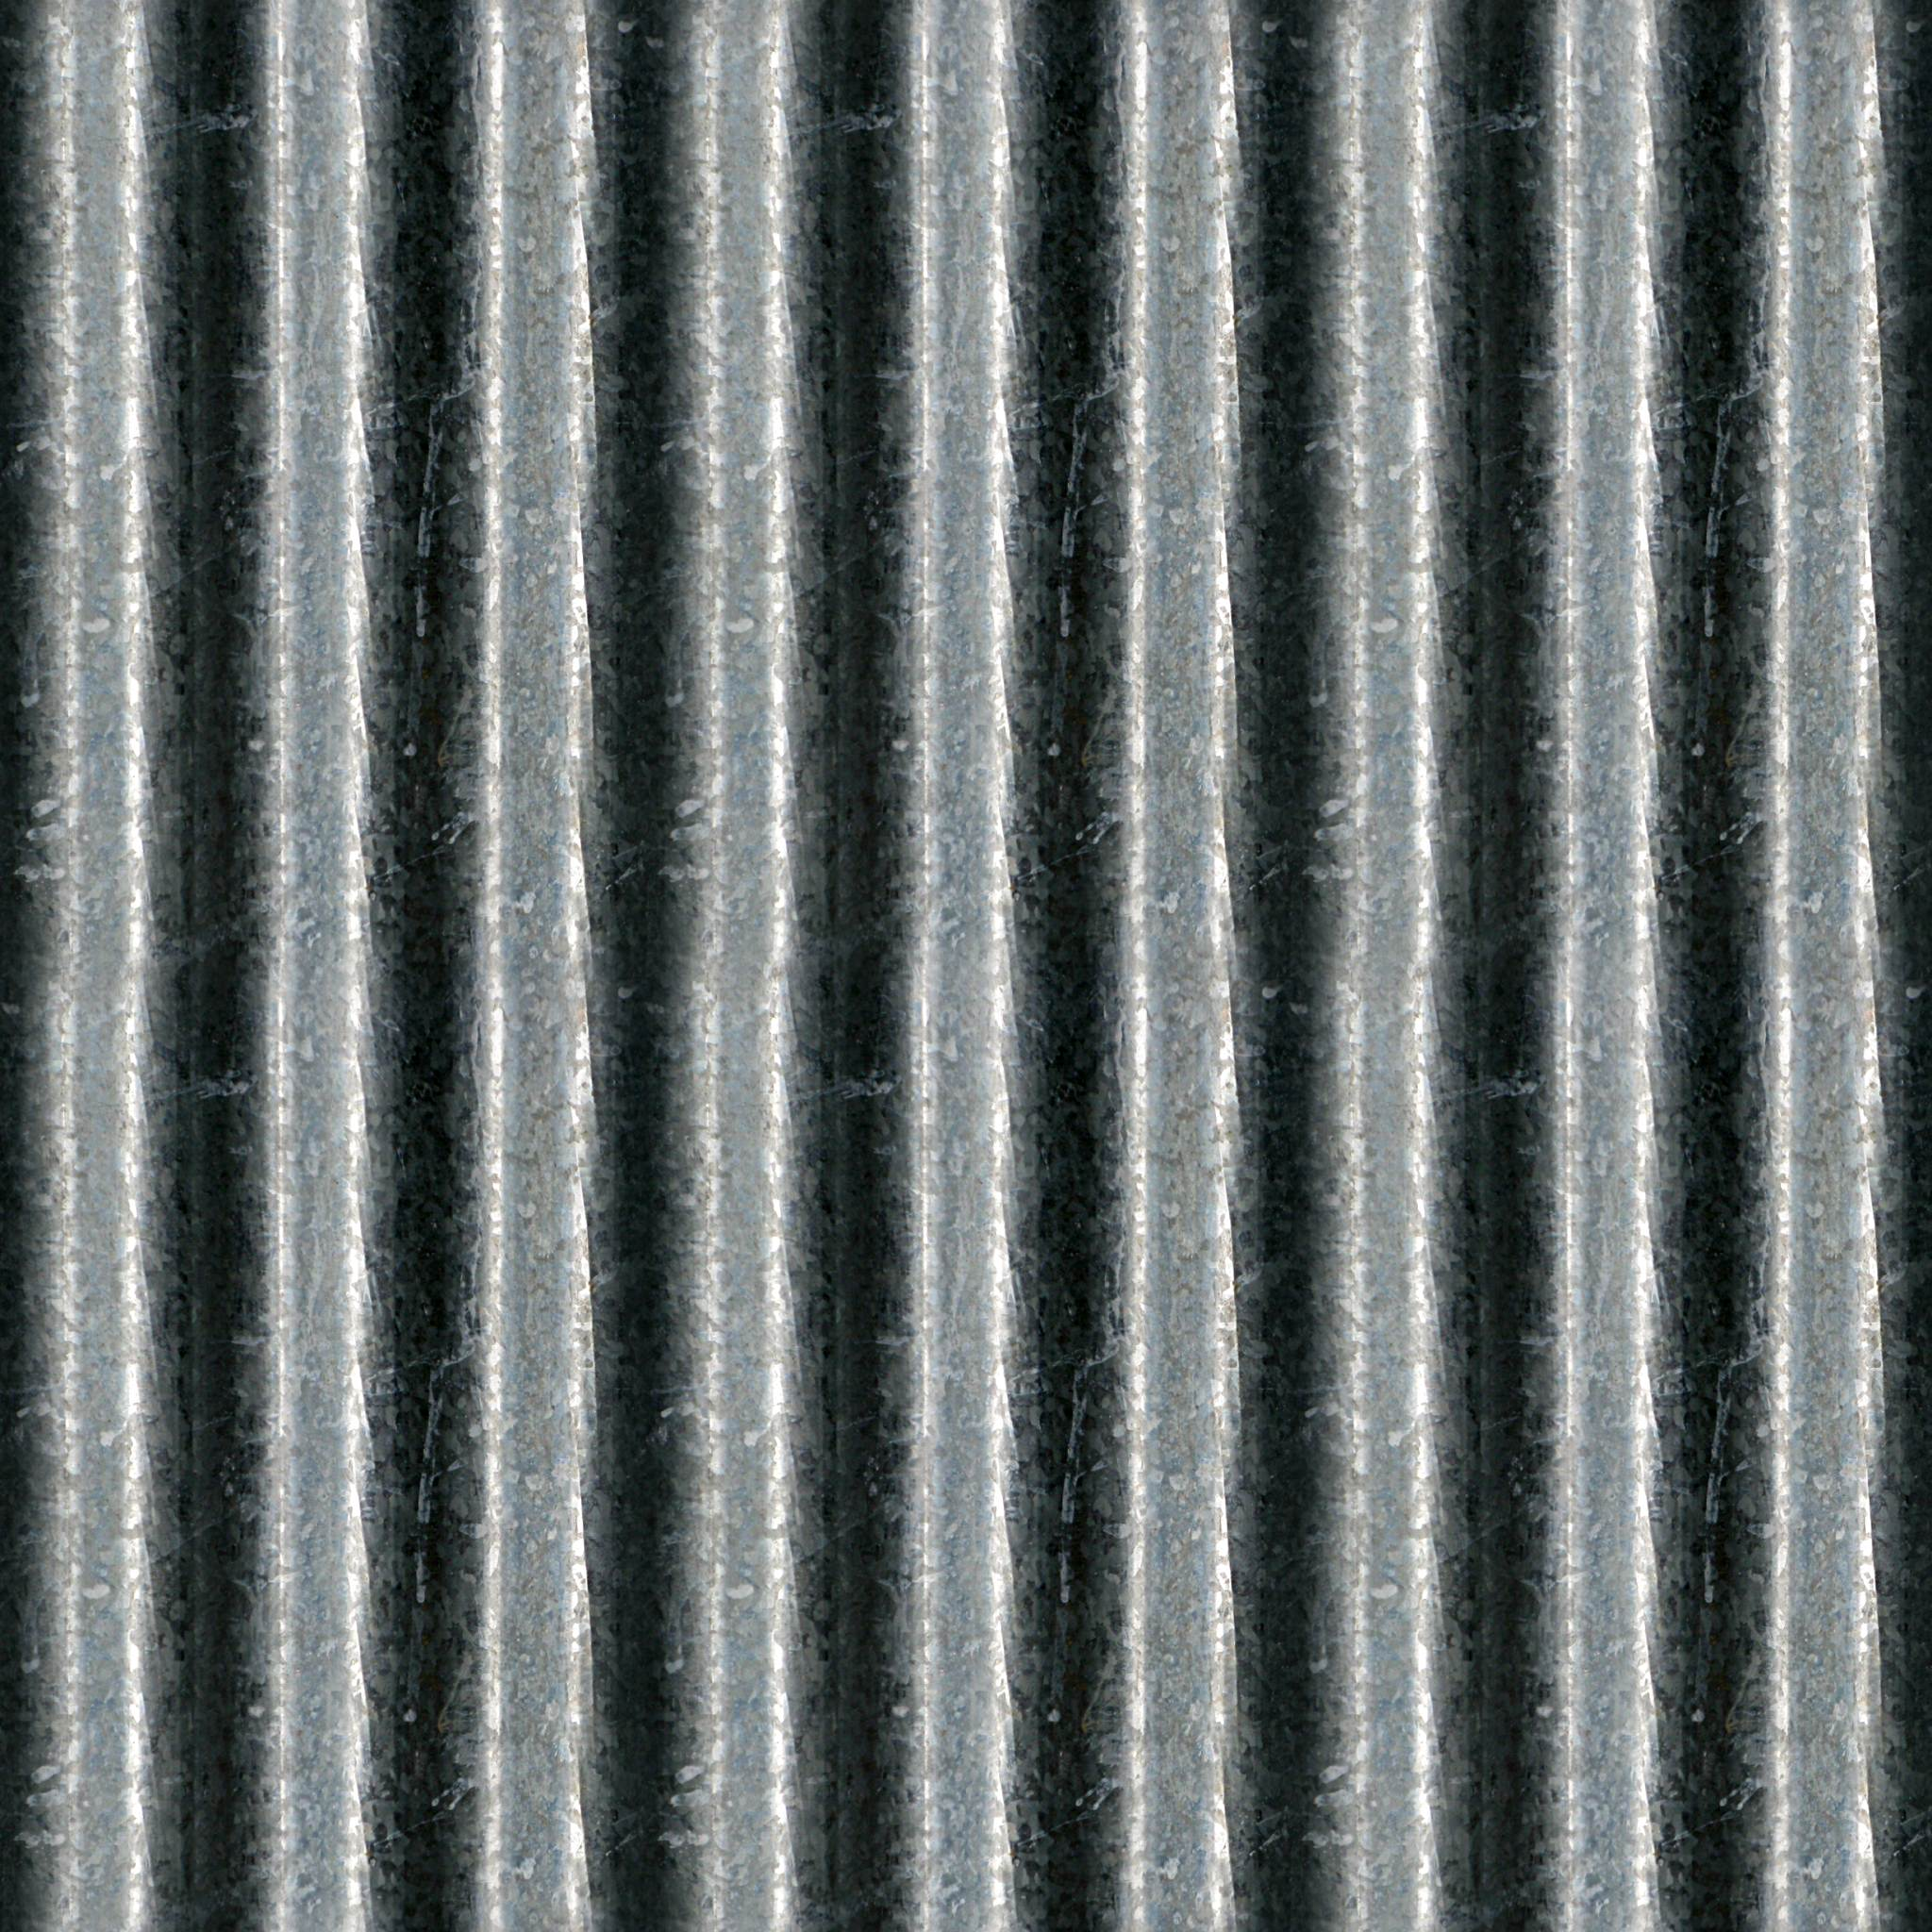 Camoflage seamless texture maps free to use steel corrugated 2048 jpg   Camoflage seamless texture maps. Corrugated Metal Seamless Texture